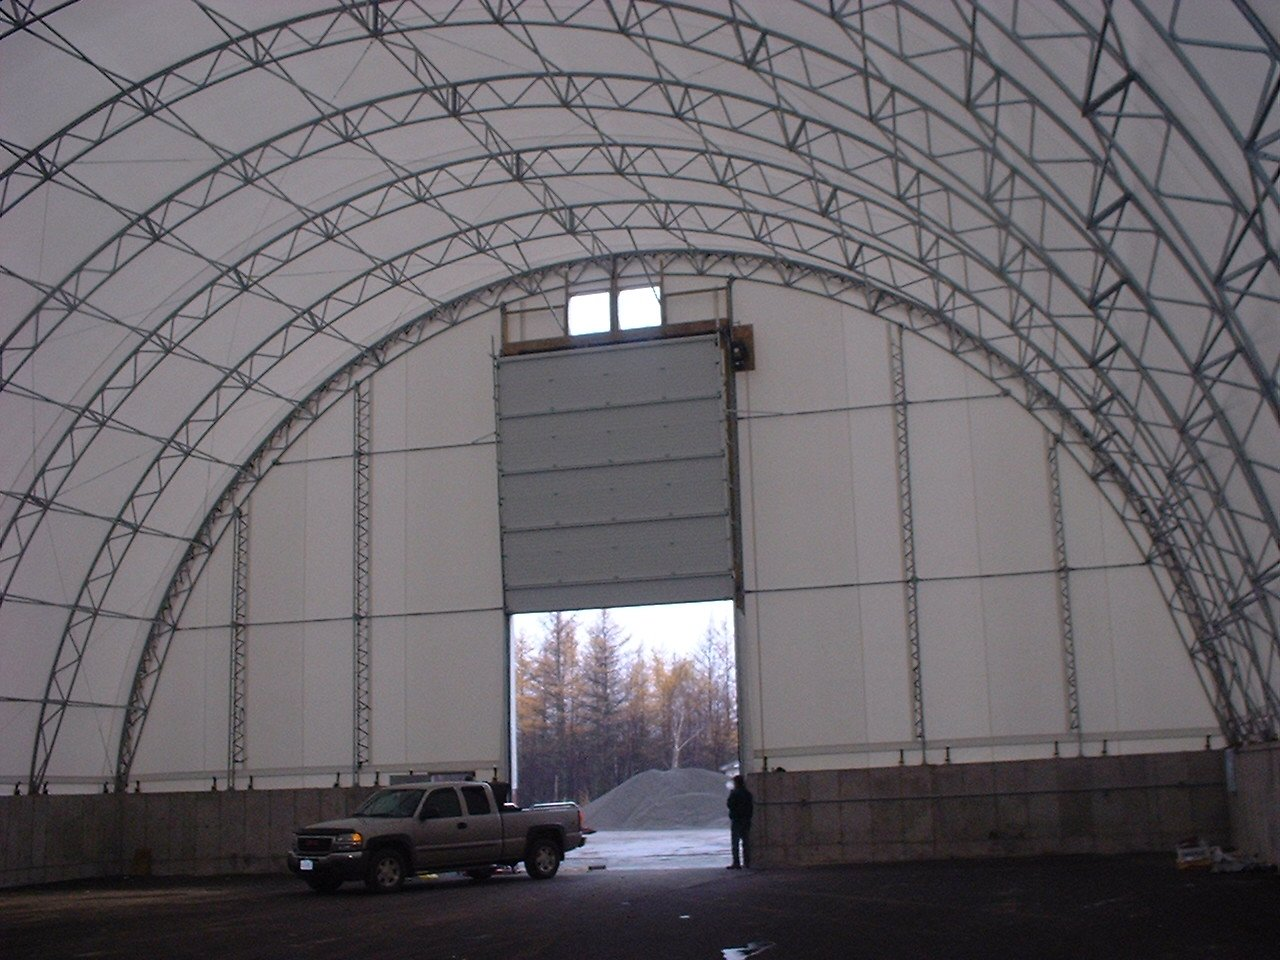 DOME BUILDINGS fabric buildings 80' x 120' warehouse